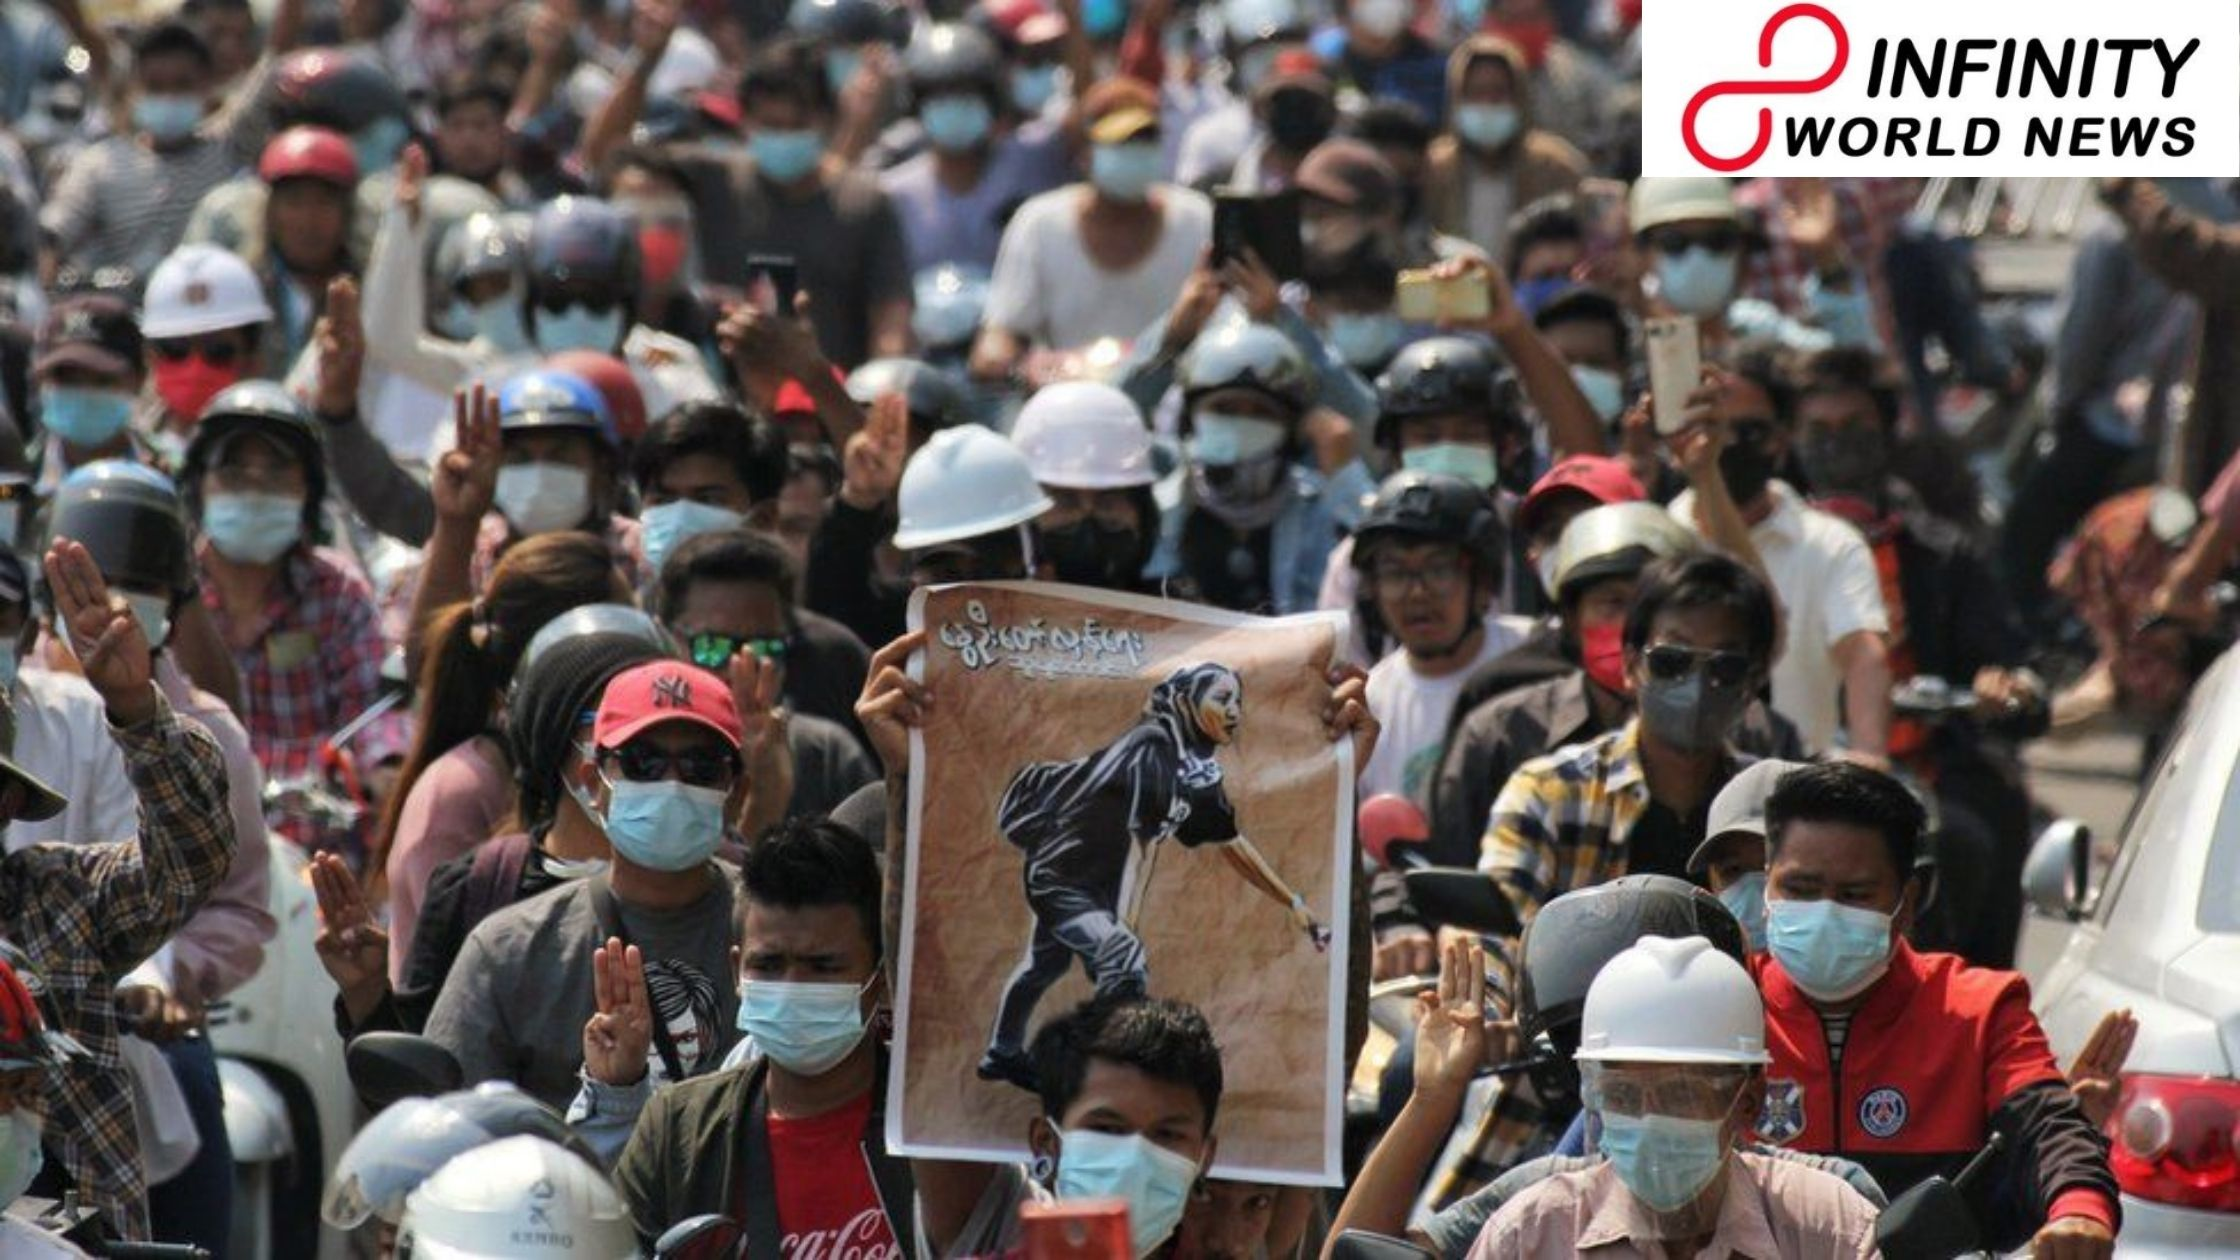 Myanmar upset: 'All will be Well' young nonconformist grieved